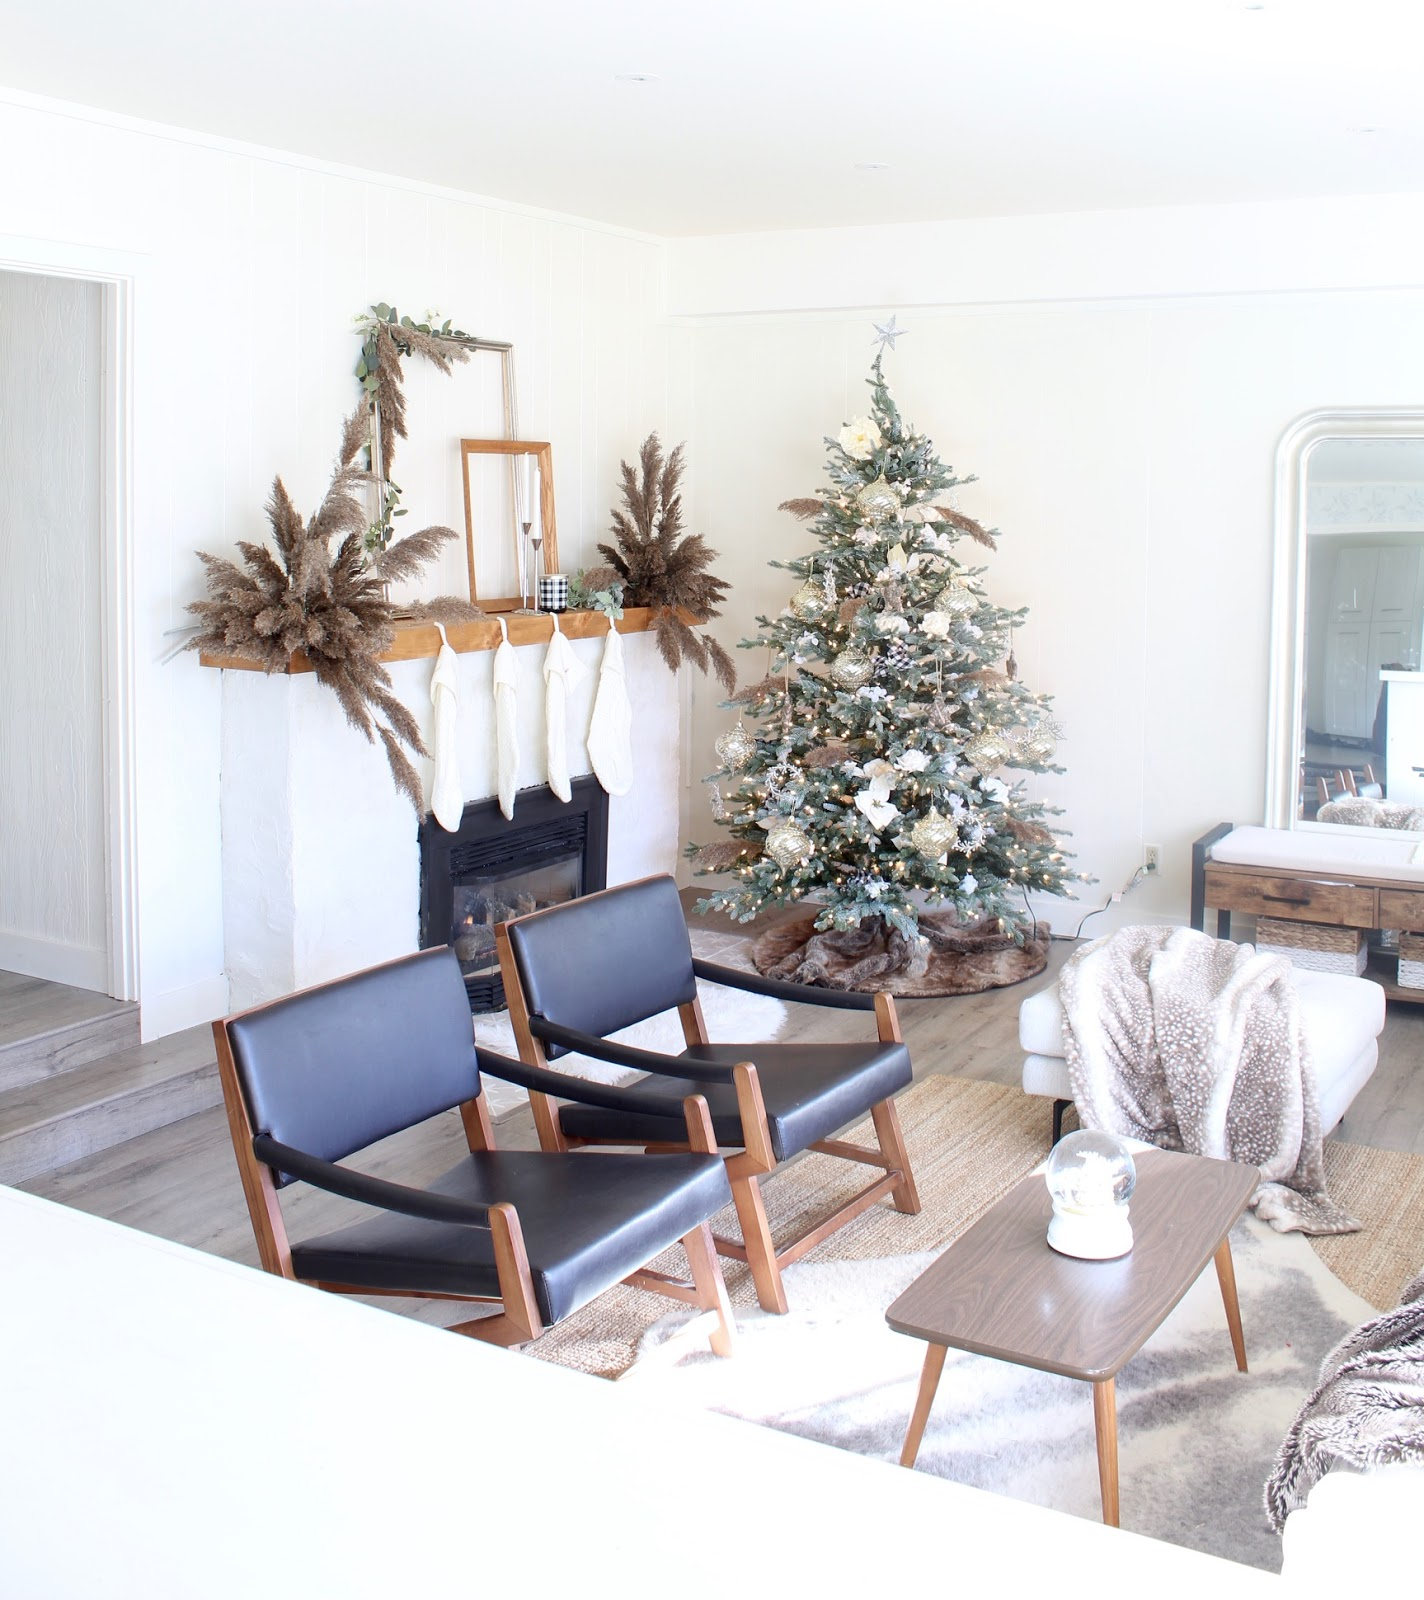 nordic-christmas-decorating-ideas-pampas-grass-diy-wedding-holiday-decor-9